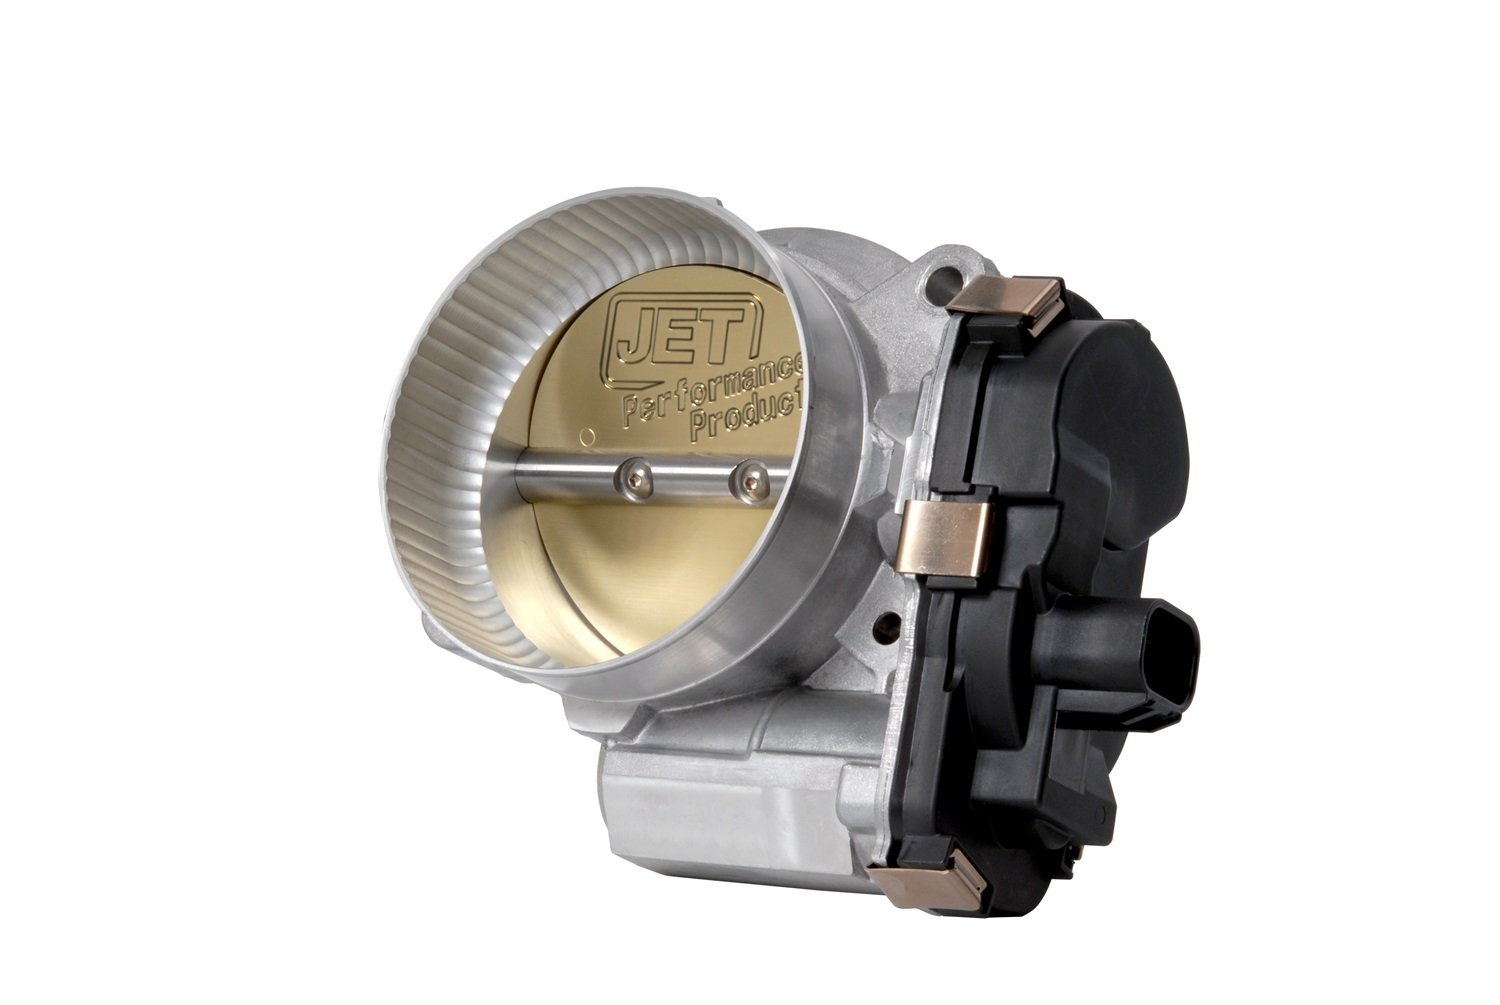 JET 76103 Powr-Flo Throttle Body